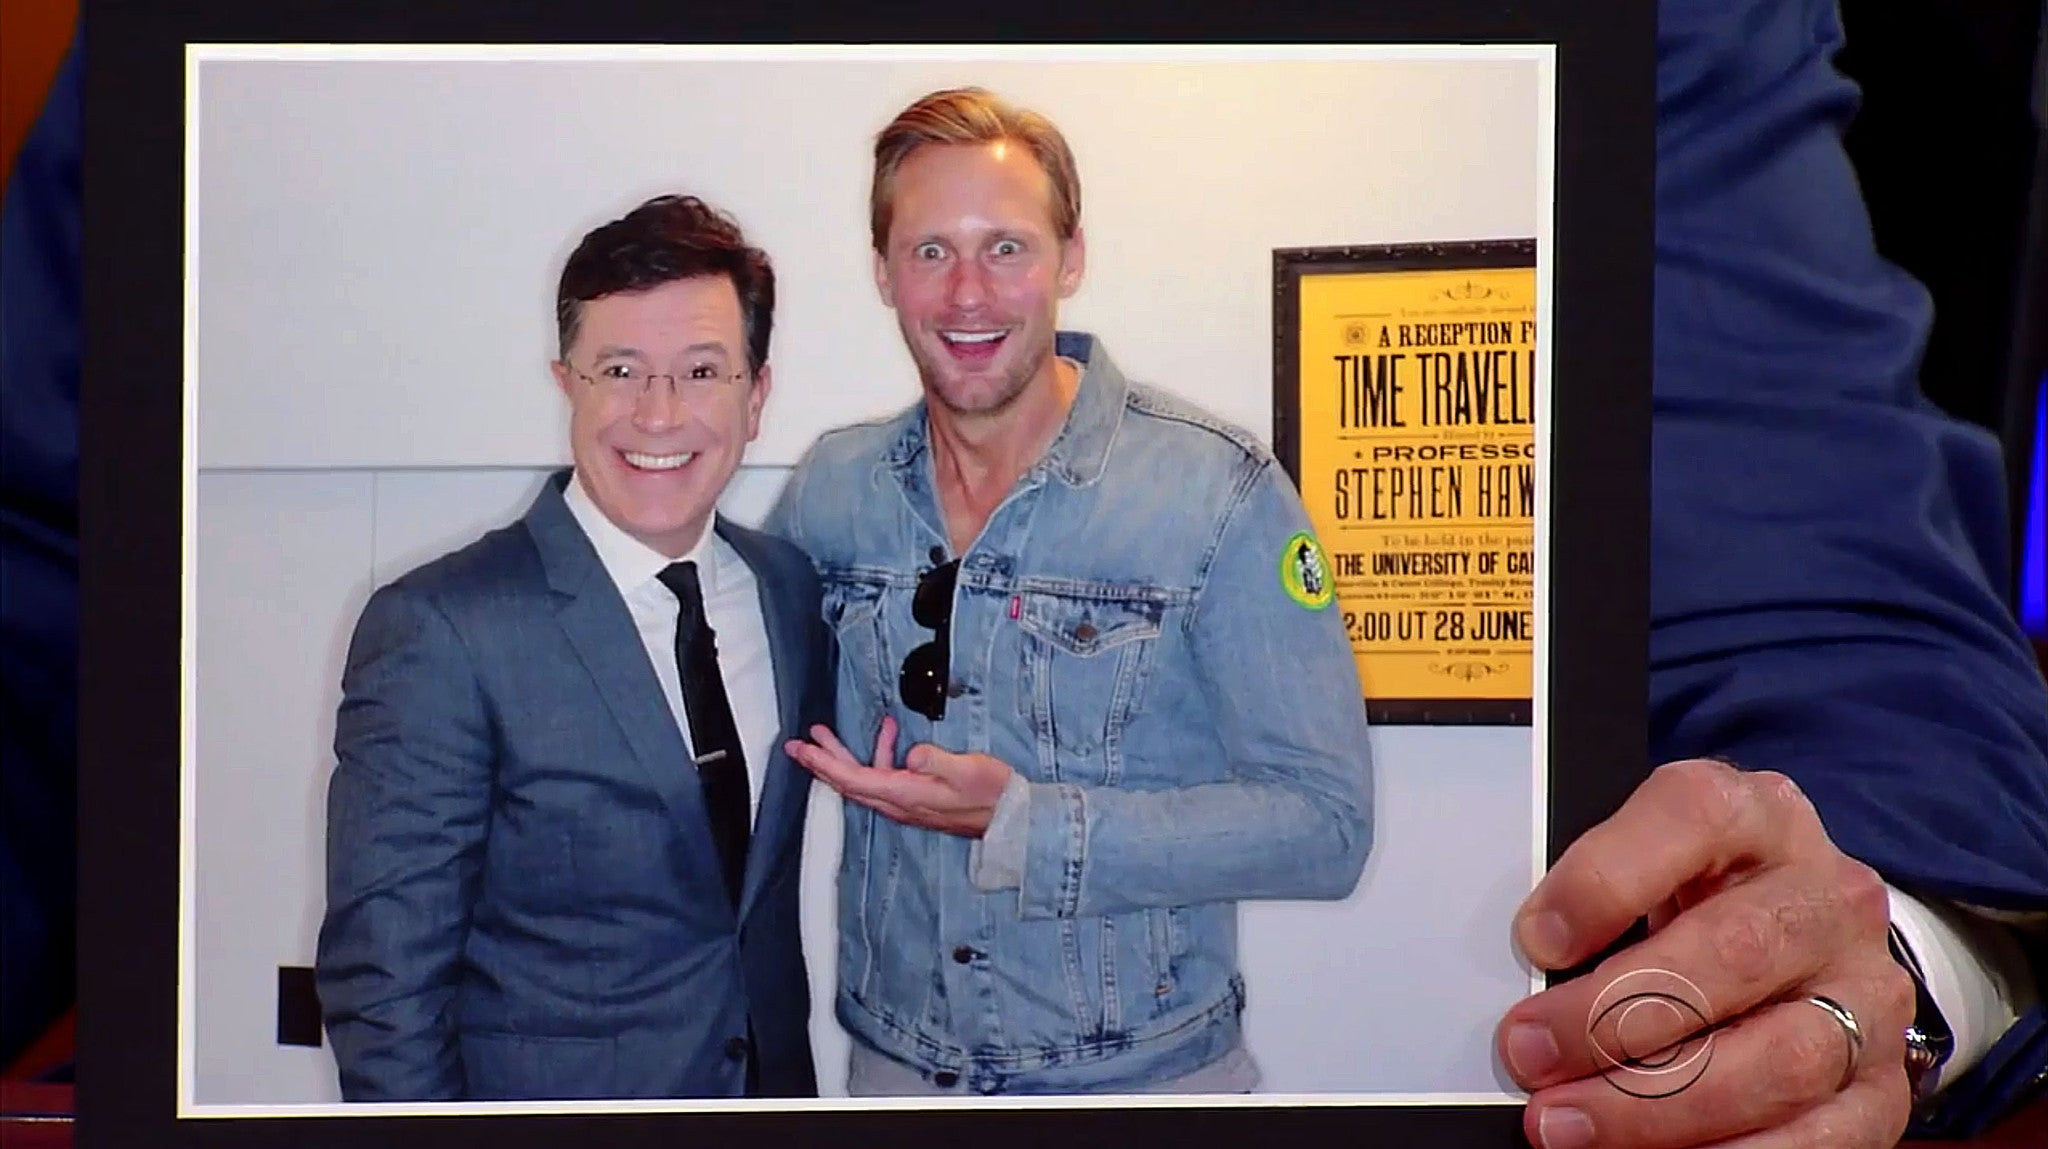 Our Time Travellers Invitation Poster features on The Late Show with Stephen Colbert!